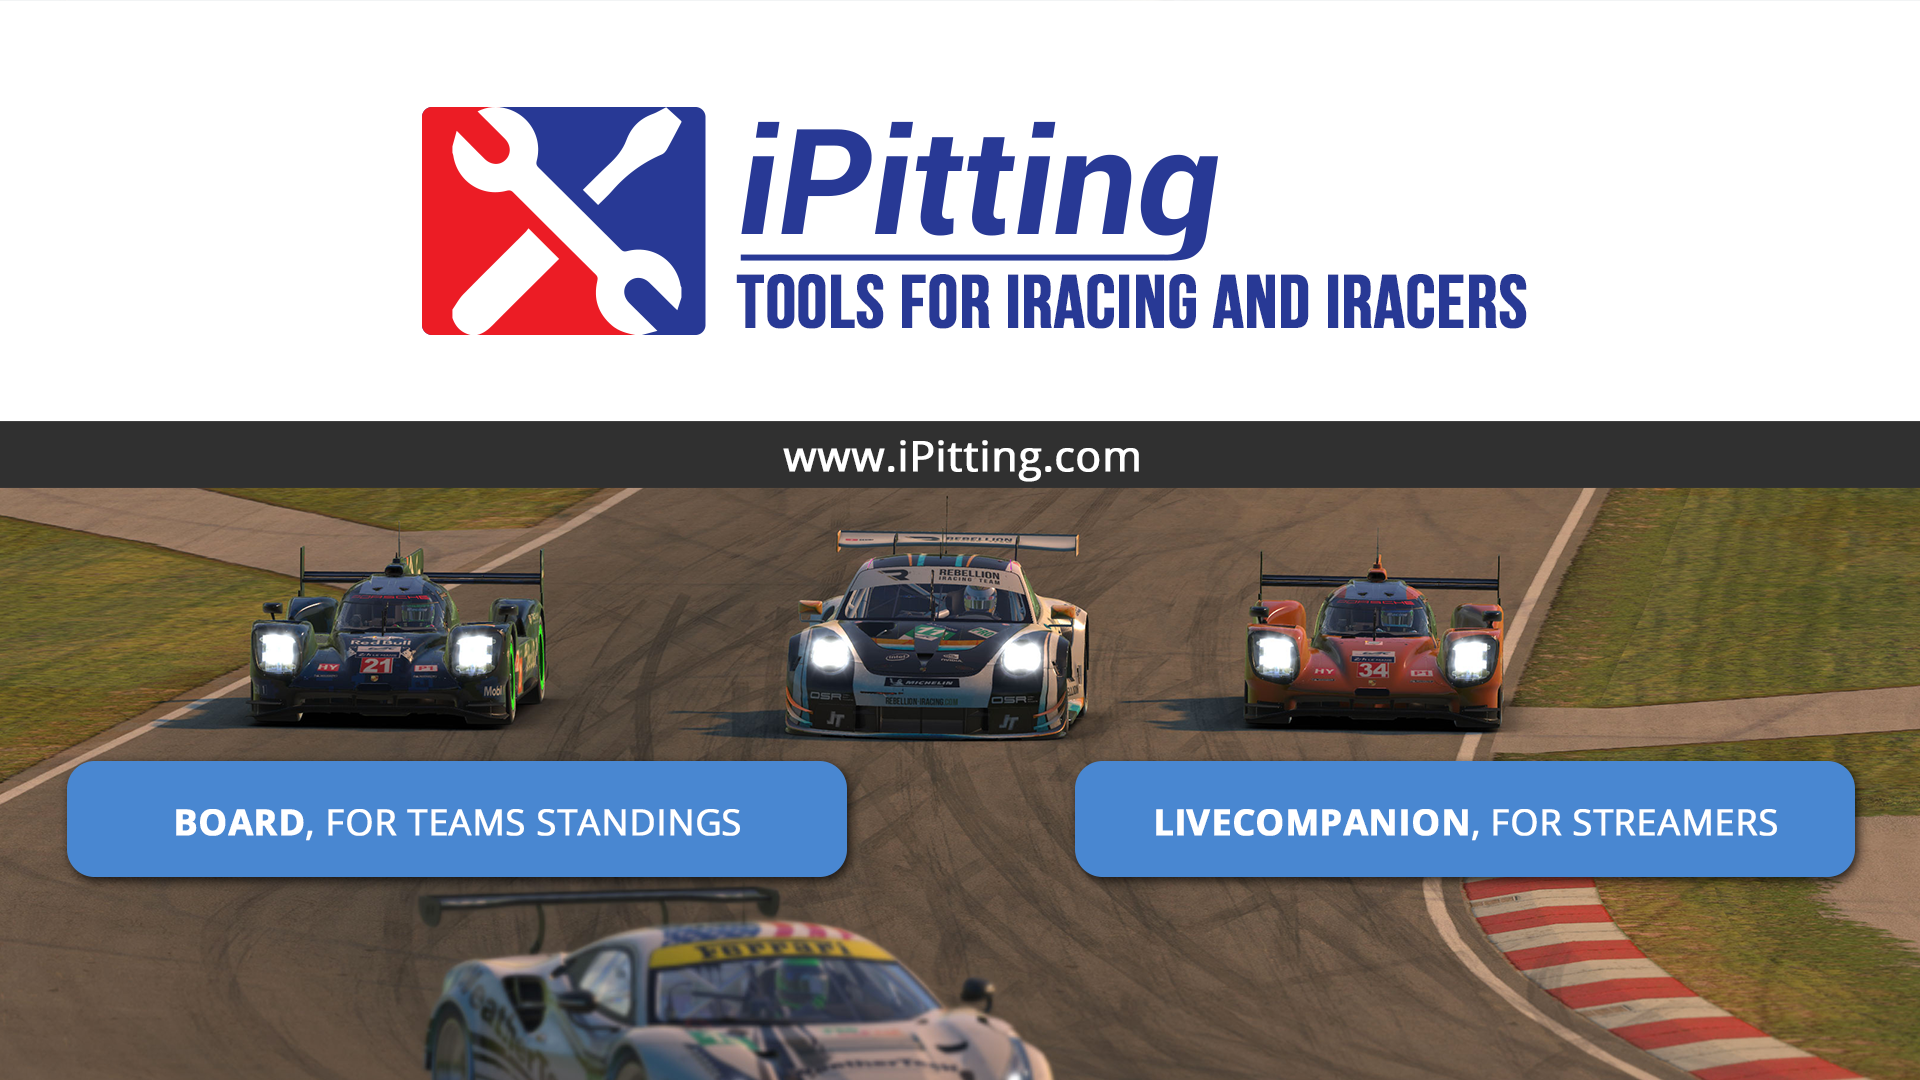 LiveCompanion • iPitting com - Tools for iRacing and iRacers